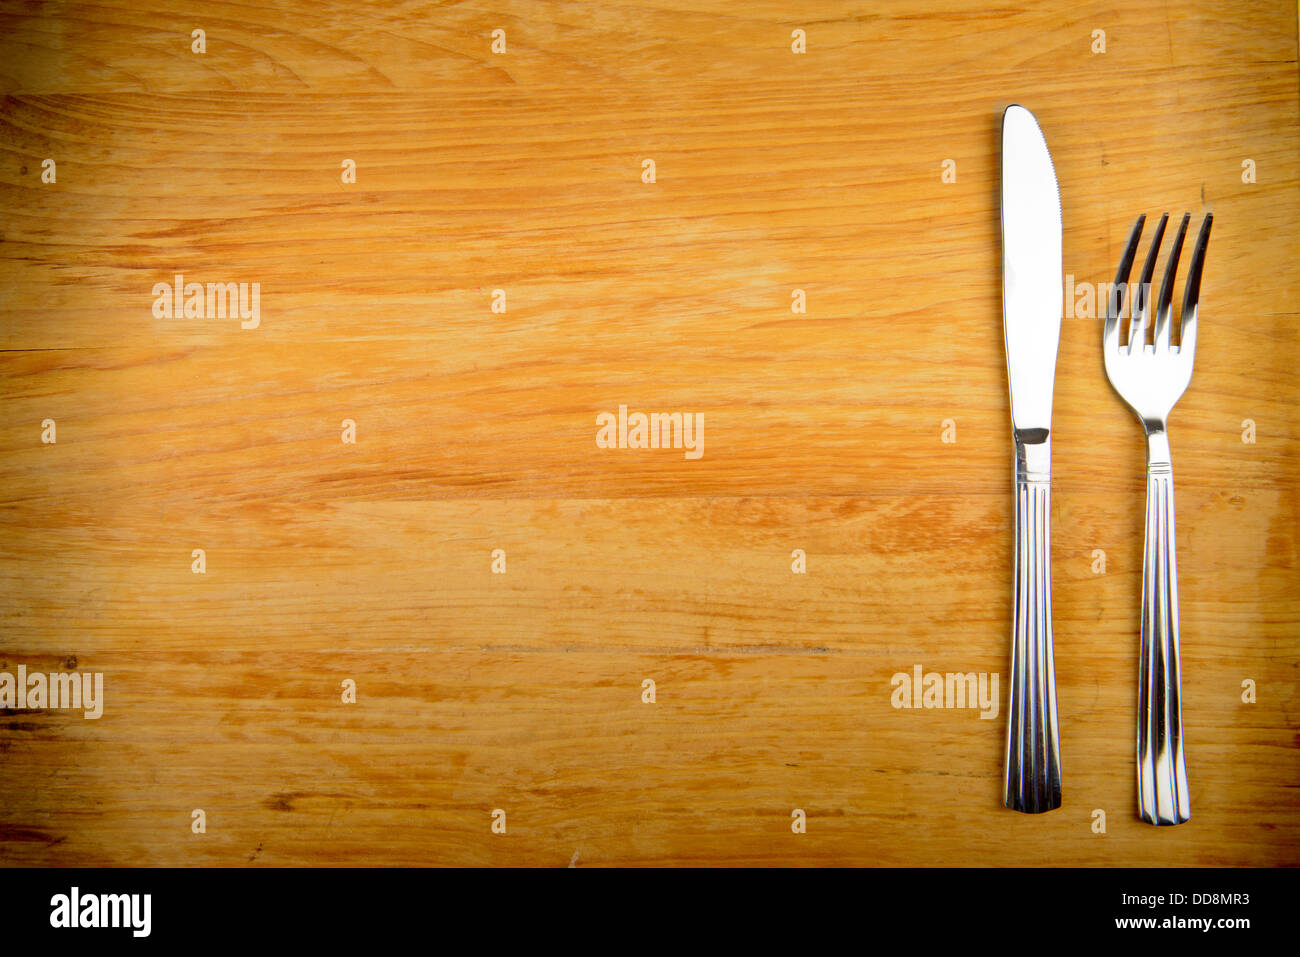 knife and fork on wooden table - Stock Image